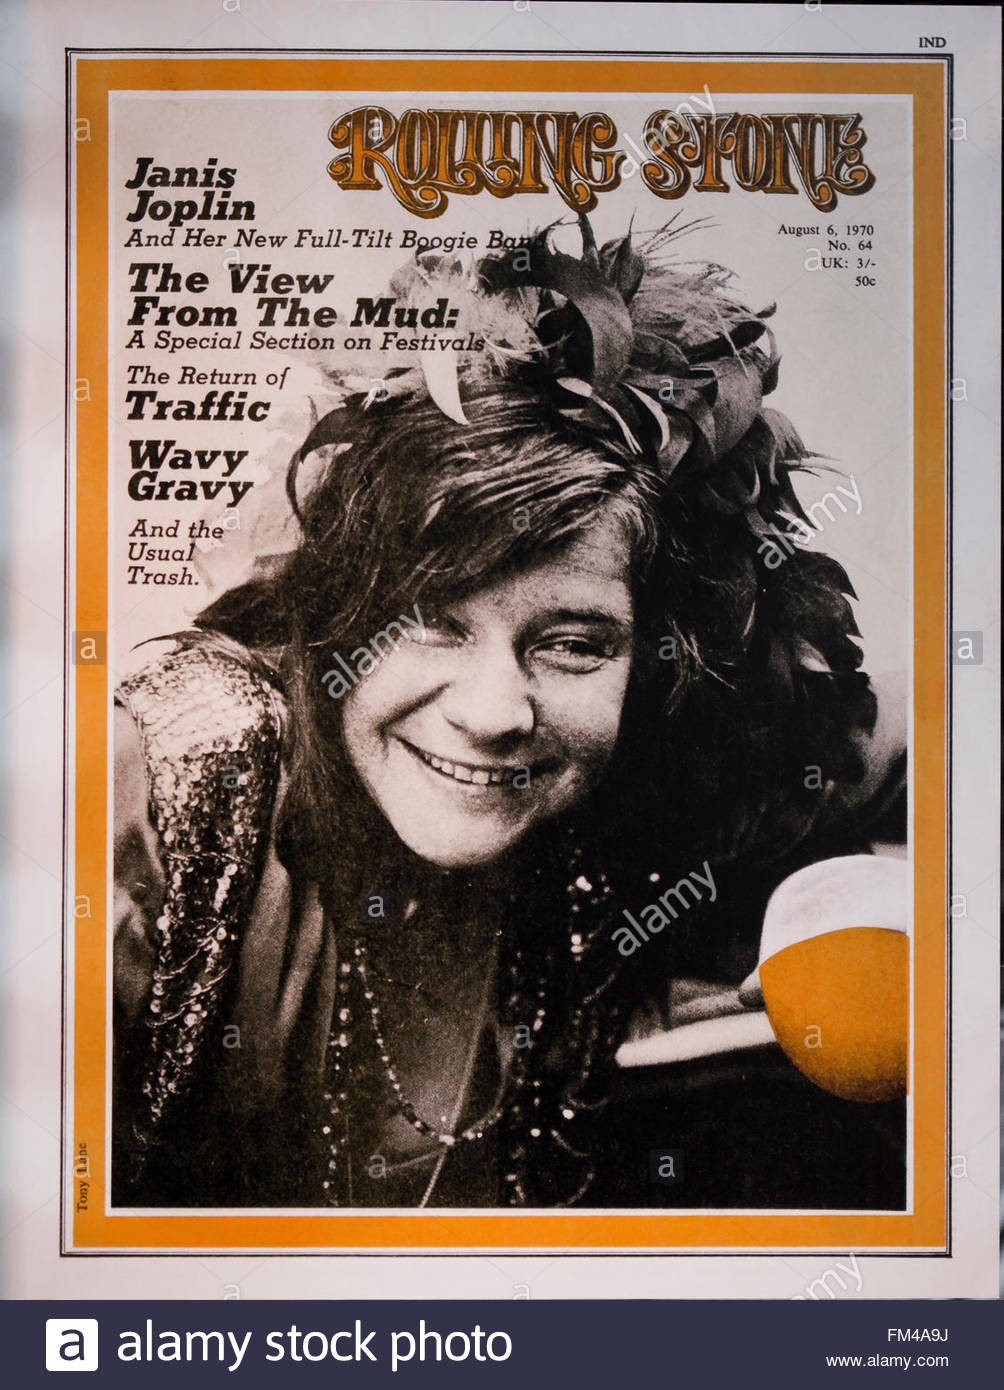 Rolling Stone magazine cover, August 6, 1970 issue - USA - Stock Image